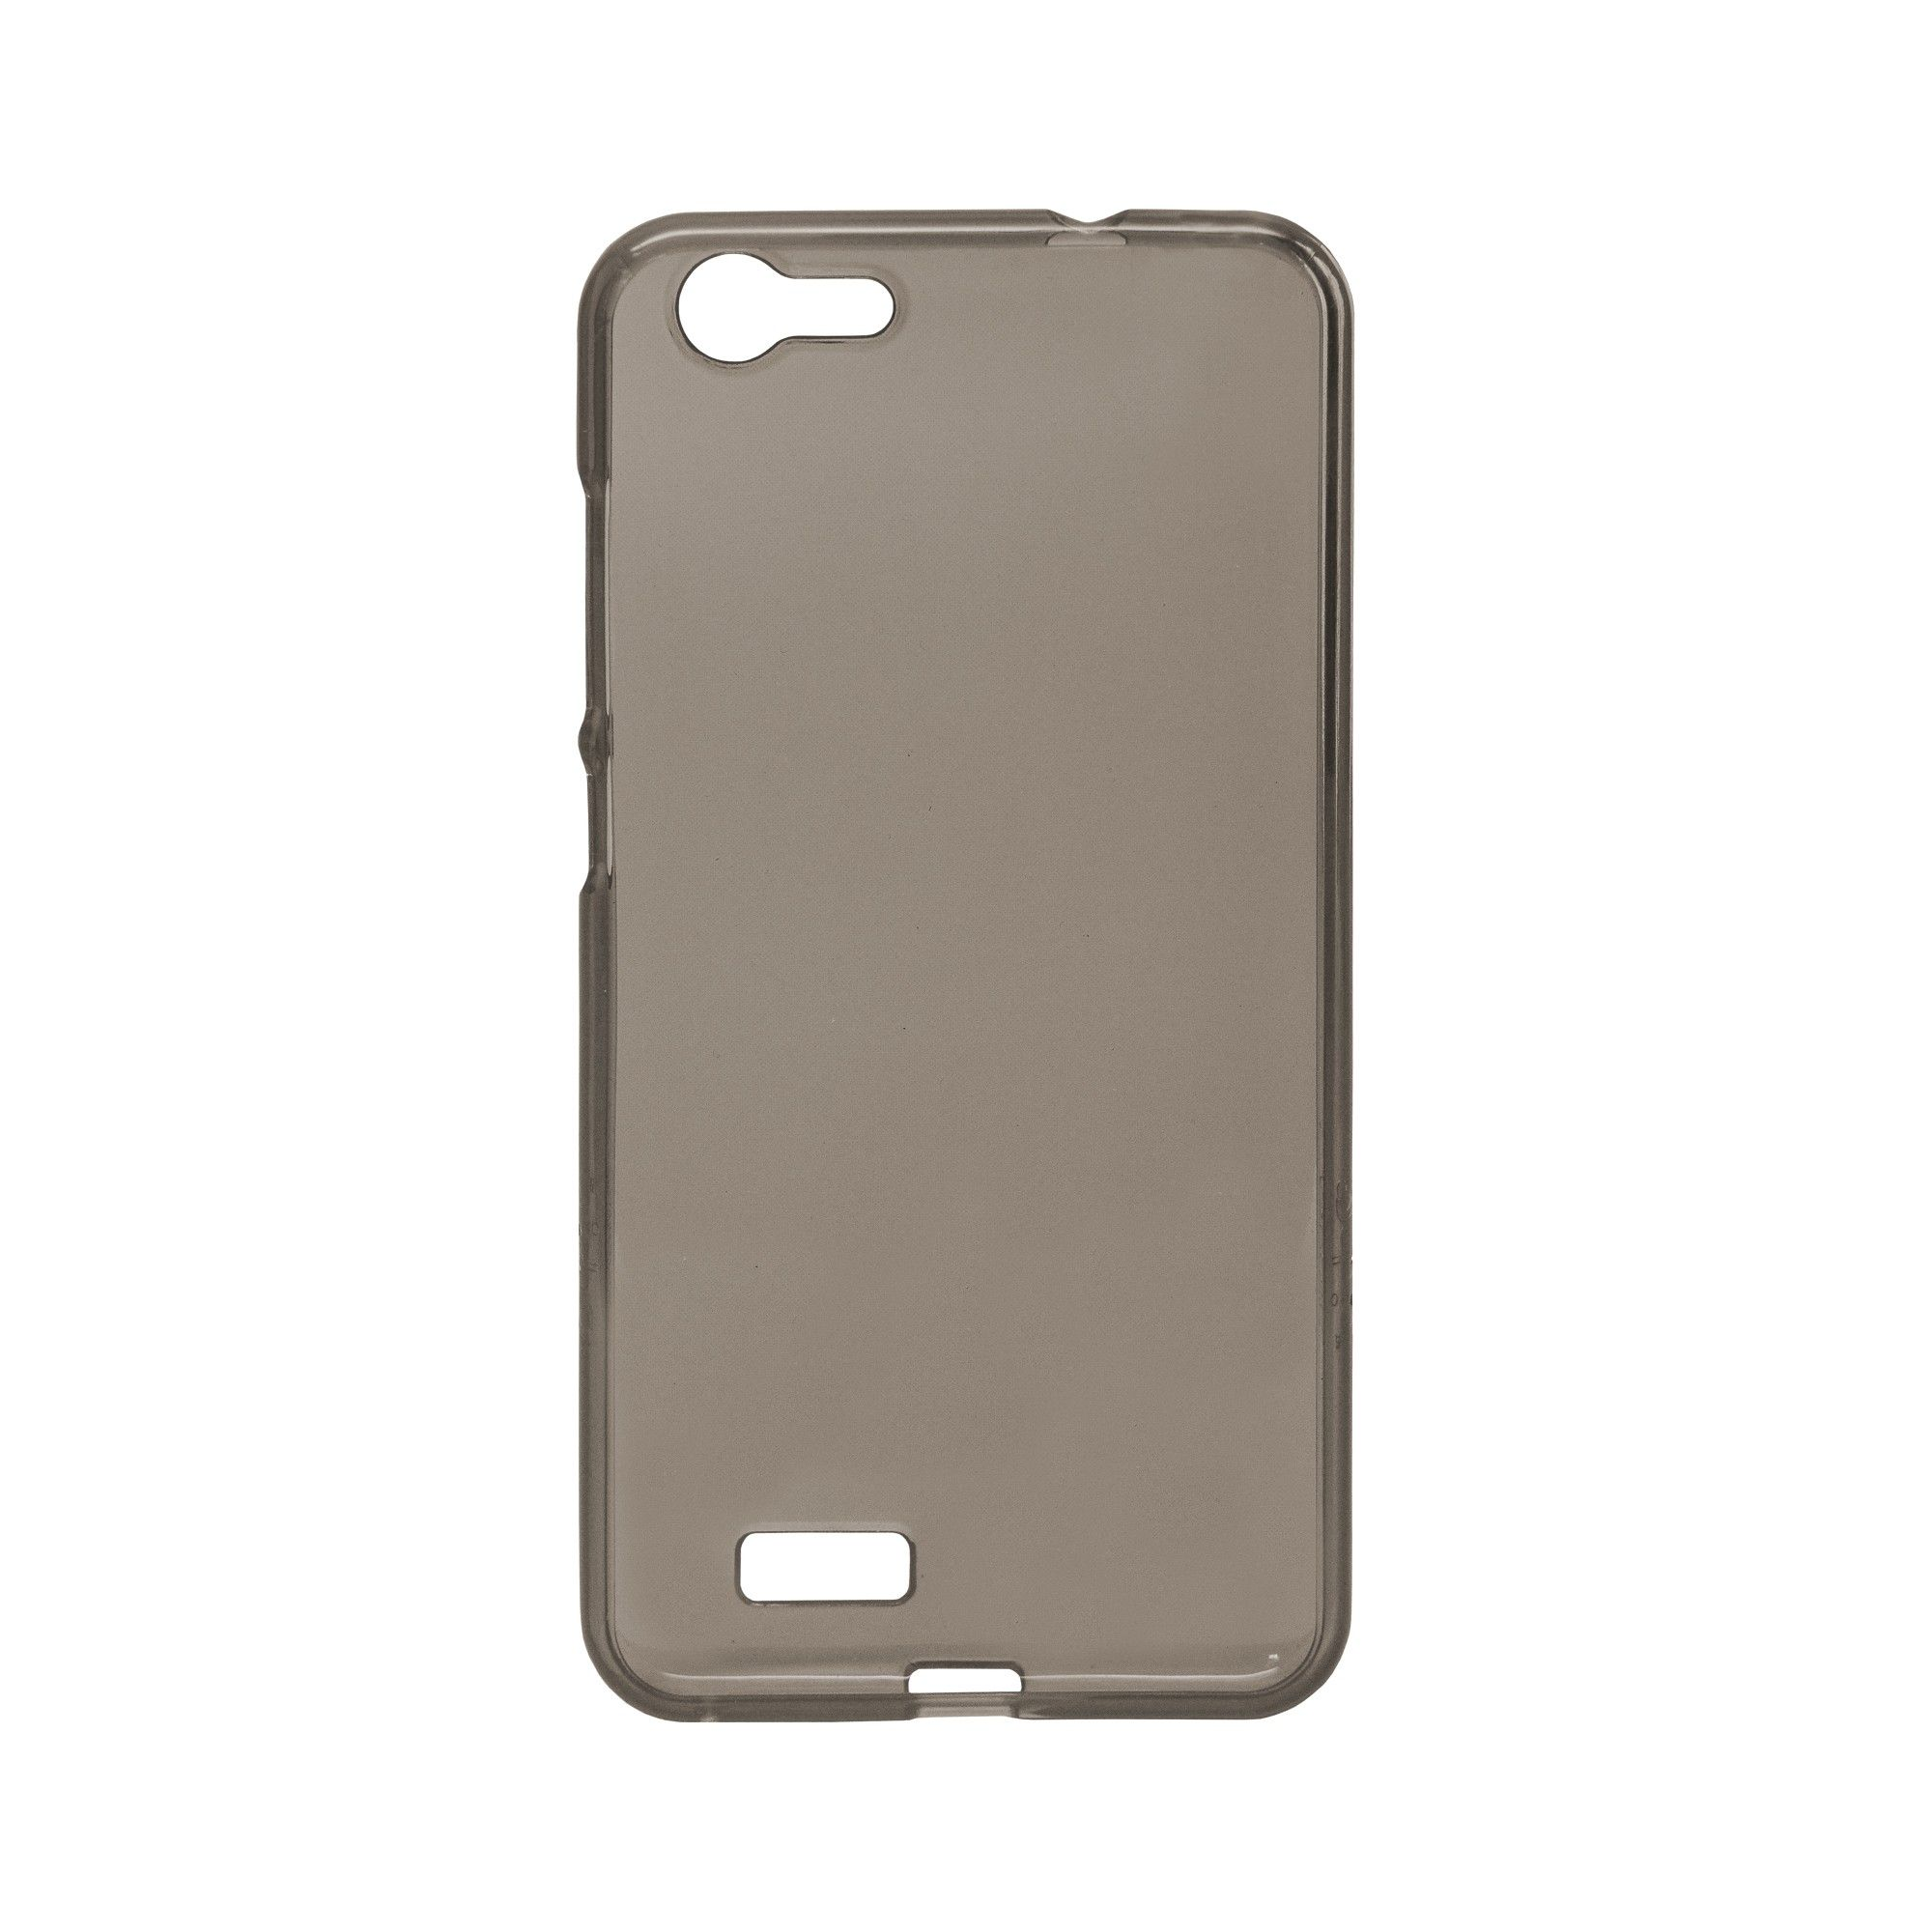 buy online 0cf1c 430a3 Orbic Slim Ergonomic Cell Phone Case - Gray in 2019 | Products ...